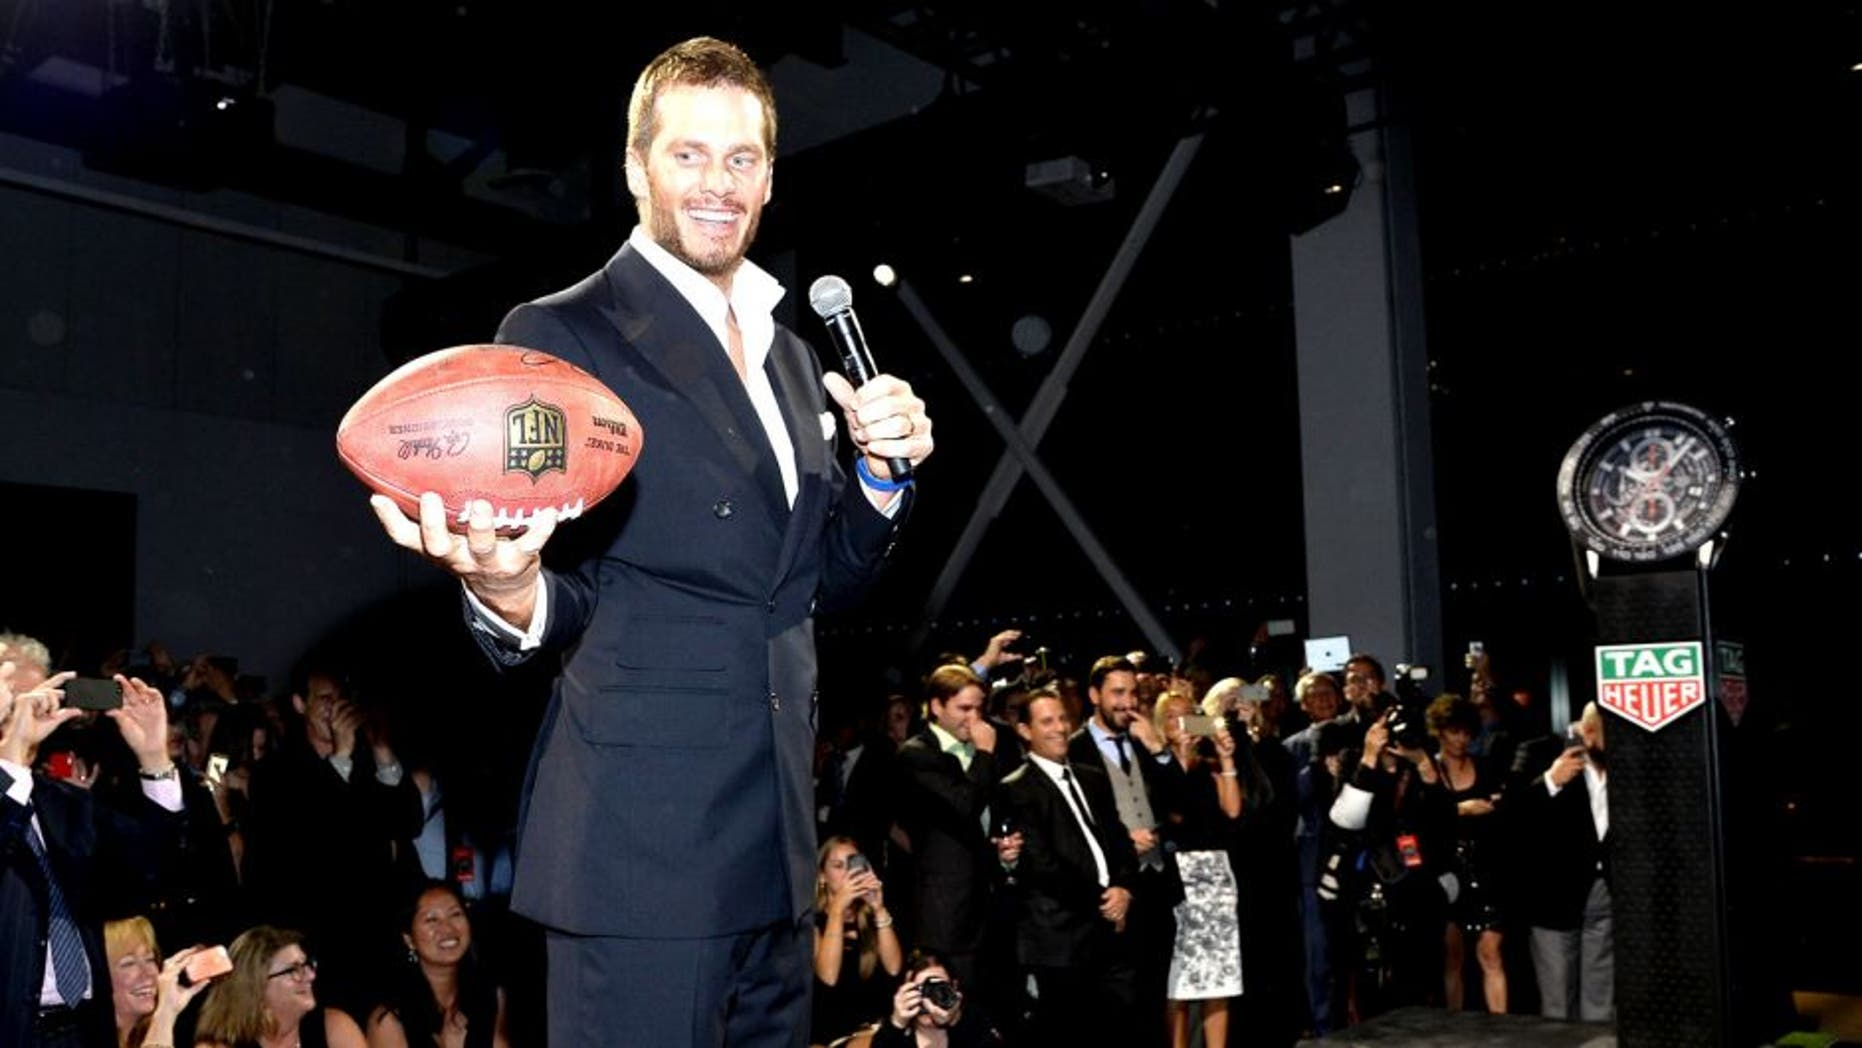 NEW YORK, NY - OCTOBER 13: NFL football player Tom Brady appears as TAG Heuer announces Tom Brady as the new brand ambassador and launches the new Carrera - Heuer 01 on October 13, 2015 in New York City. (Photo by Mike Coppola/Getty Images for TAG Heuer)